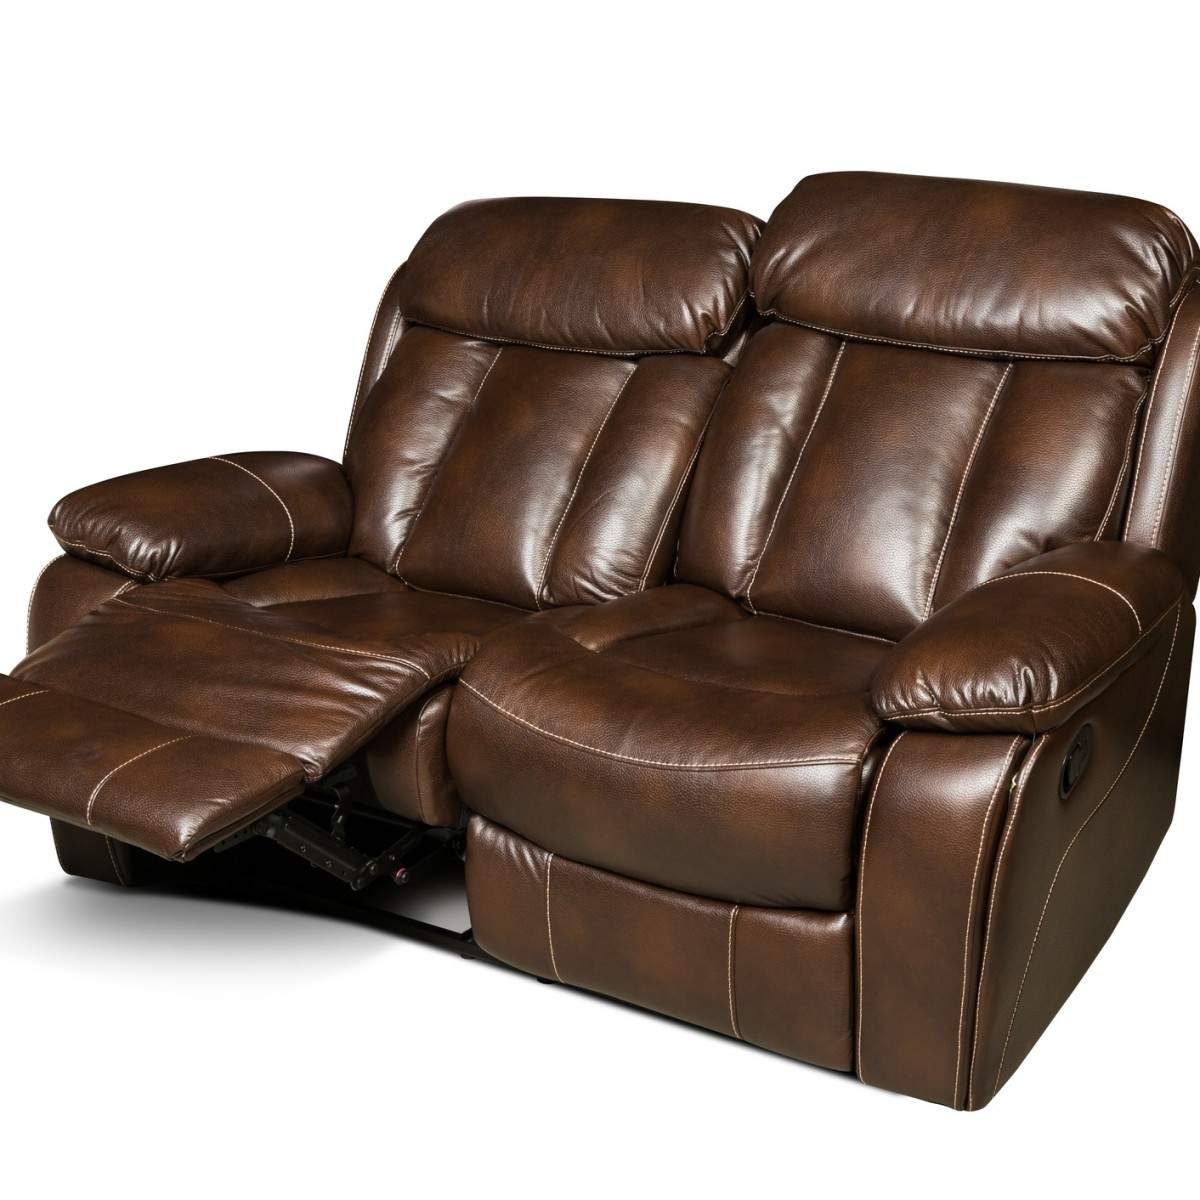 Prime Slipcovers For Reclining Couches Thriftyfun Gamerscity Chair Design For Home Gamerscityorg